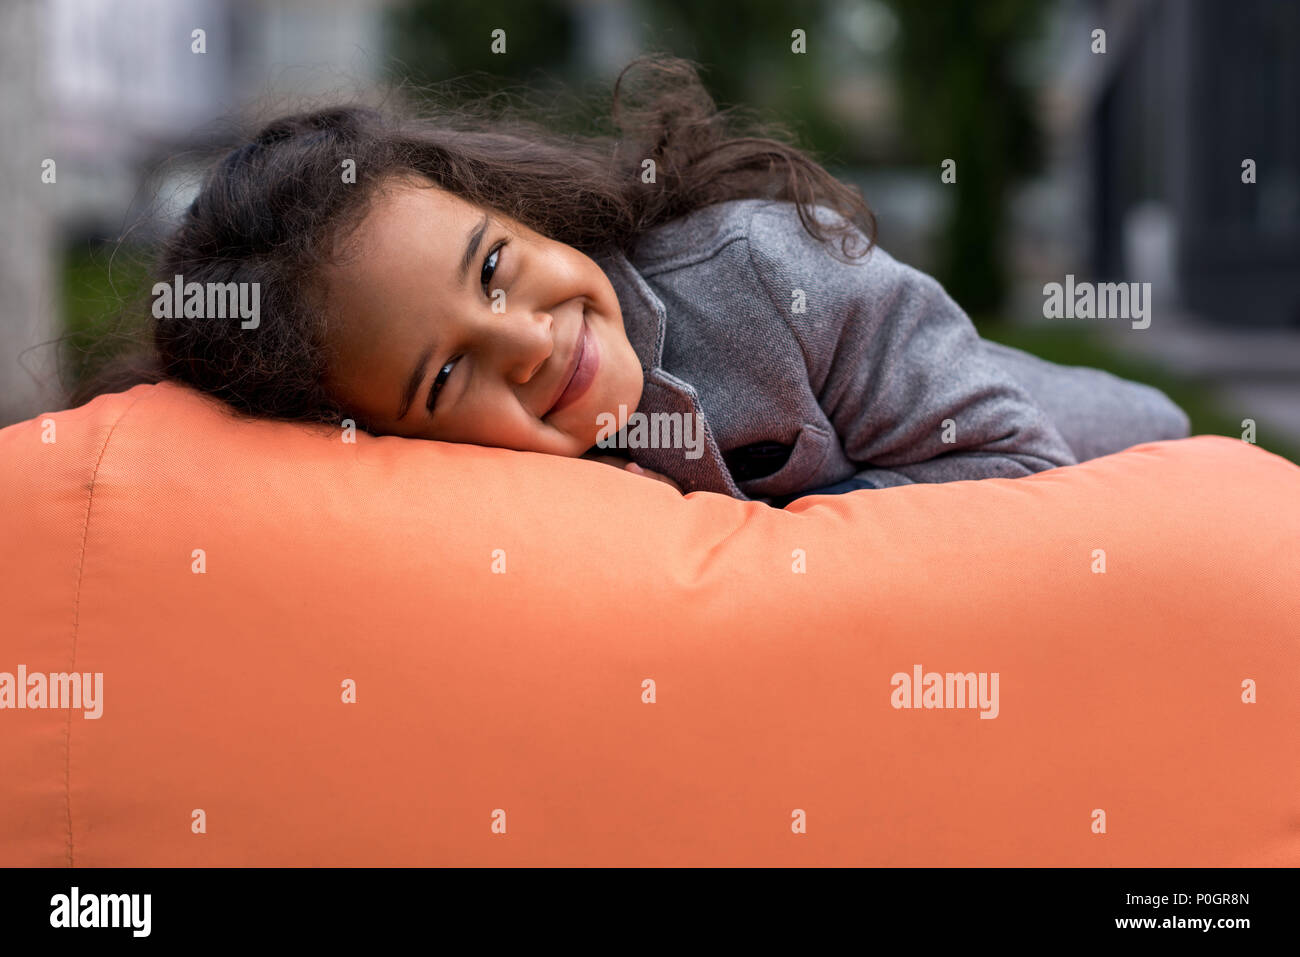 close-up portrait of beautiful african american girl lying on bean bag chair and looking at camera - Stock Image